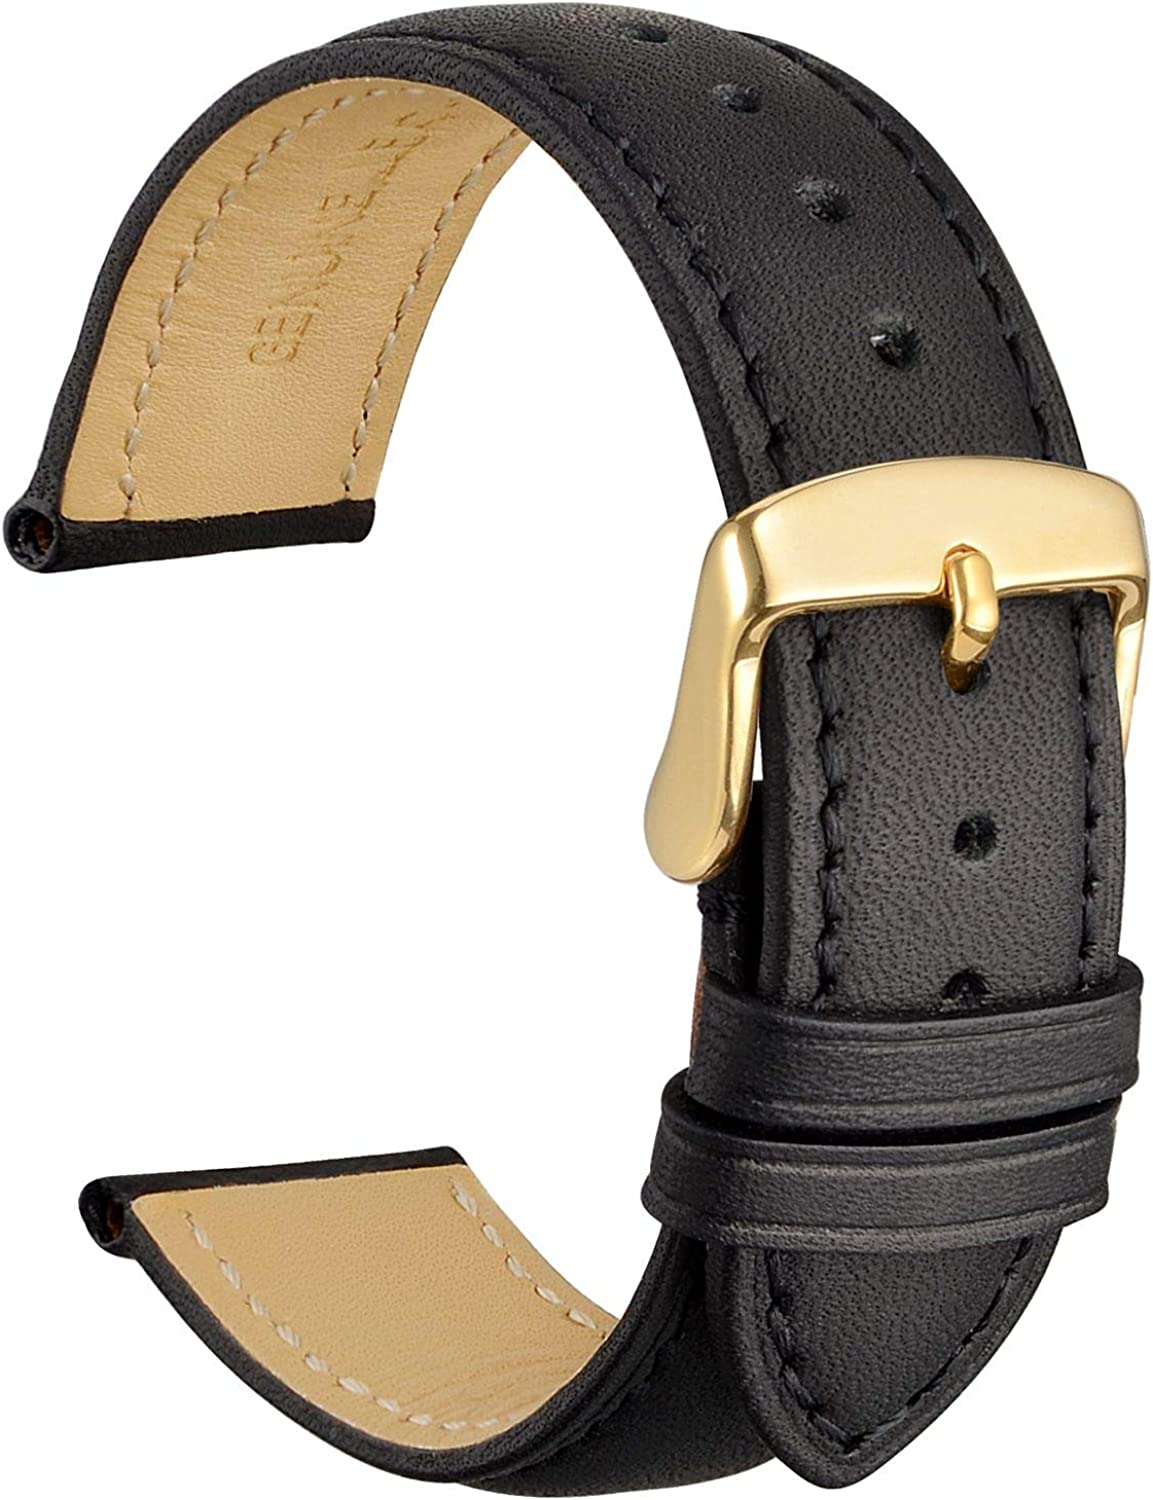 WOCCI Watch Band 14mm 16mm 18mm 19mm 20mm 21mm 22mm 23mm 24mm - Vintage Leather Watch Strap,Choice of Color and Width